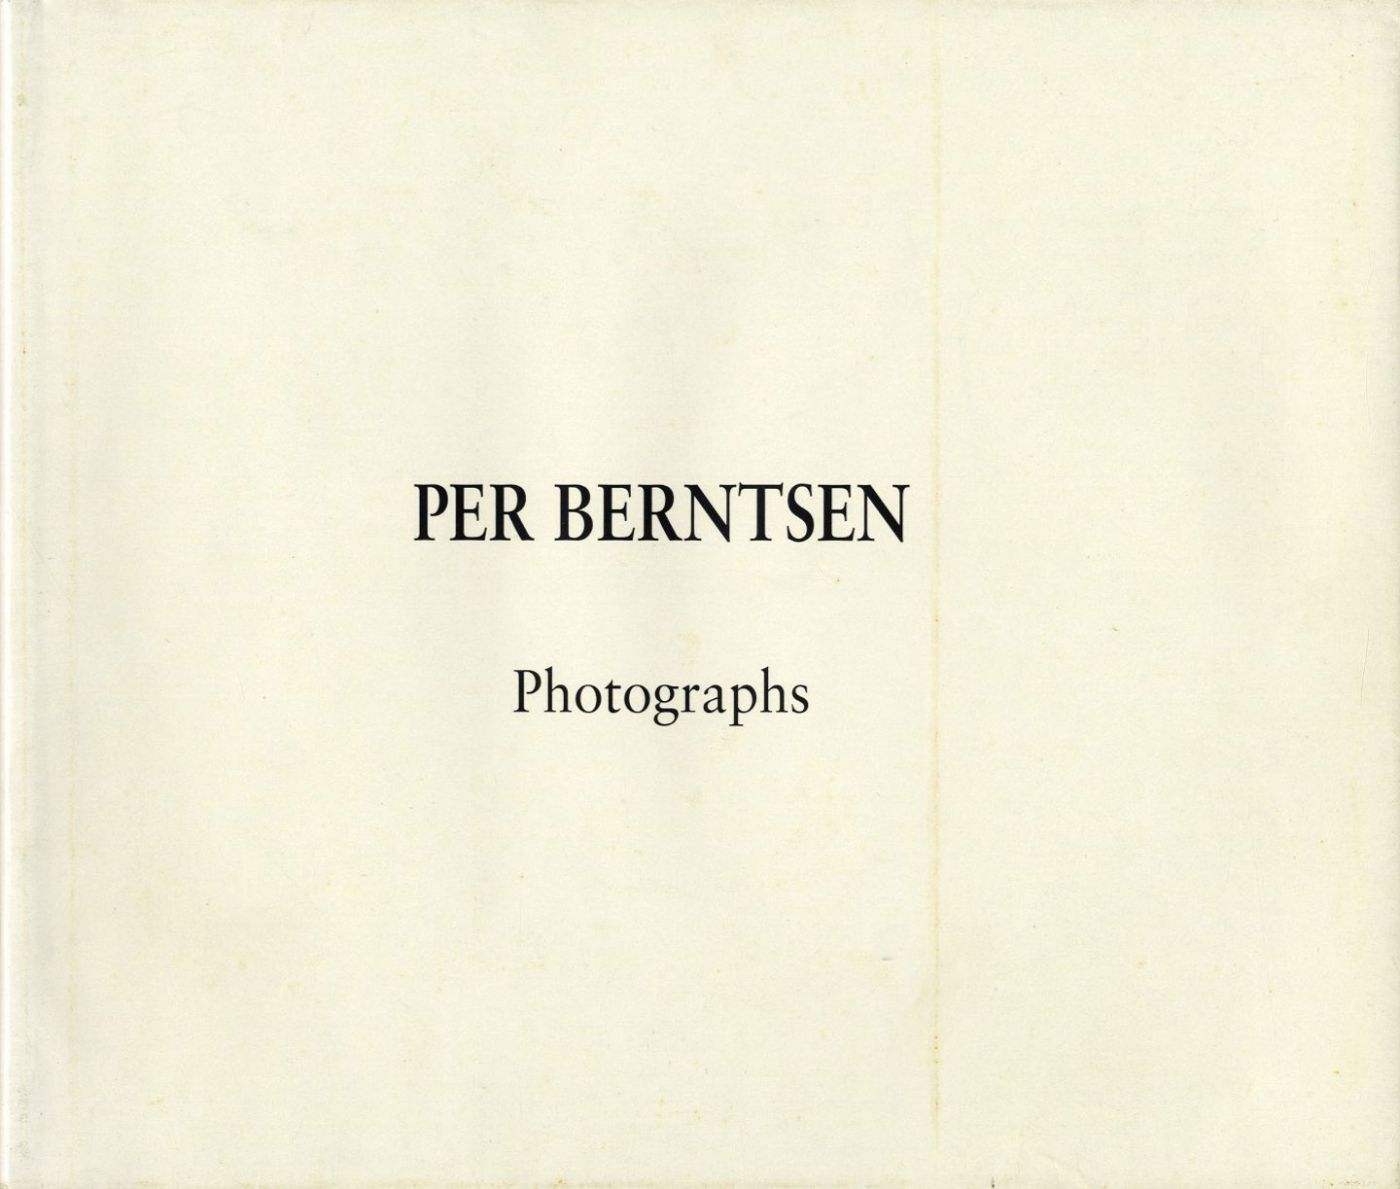 Per Berntsen: Photographs